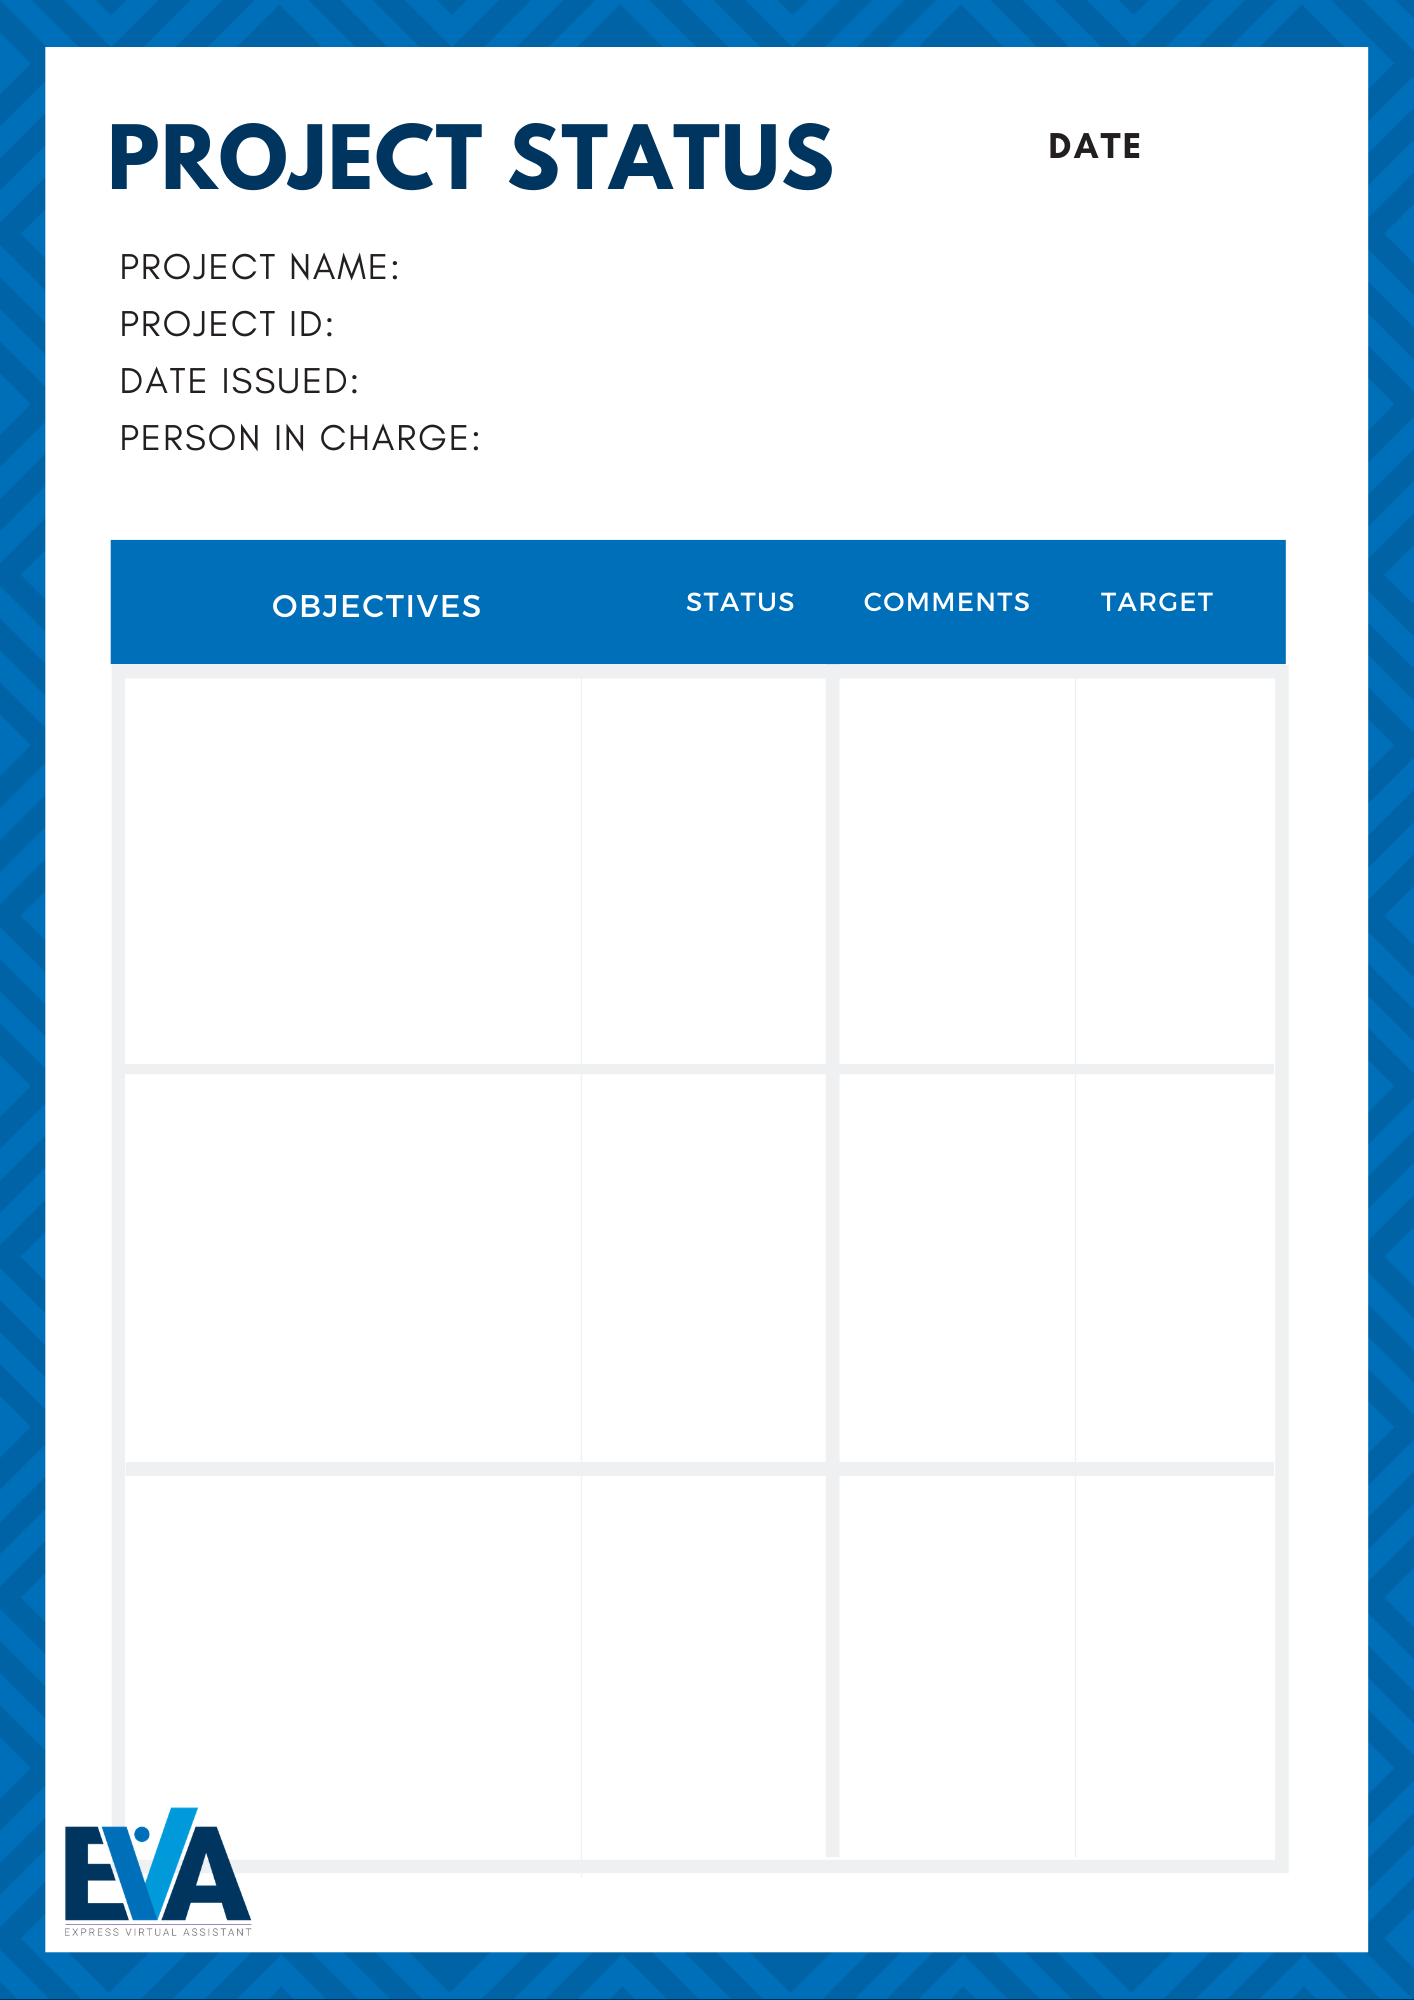 project status form